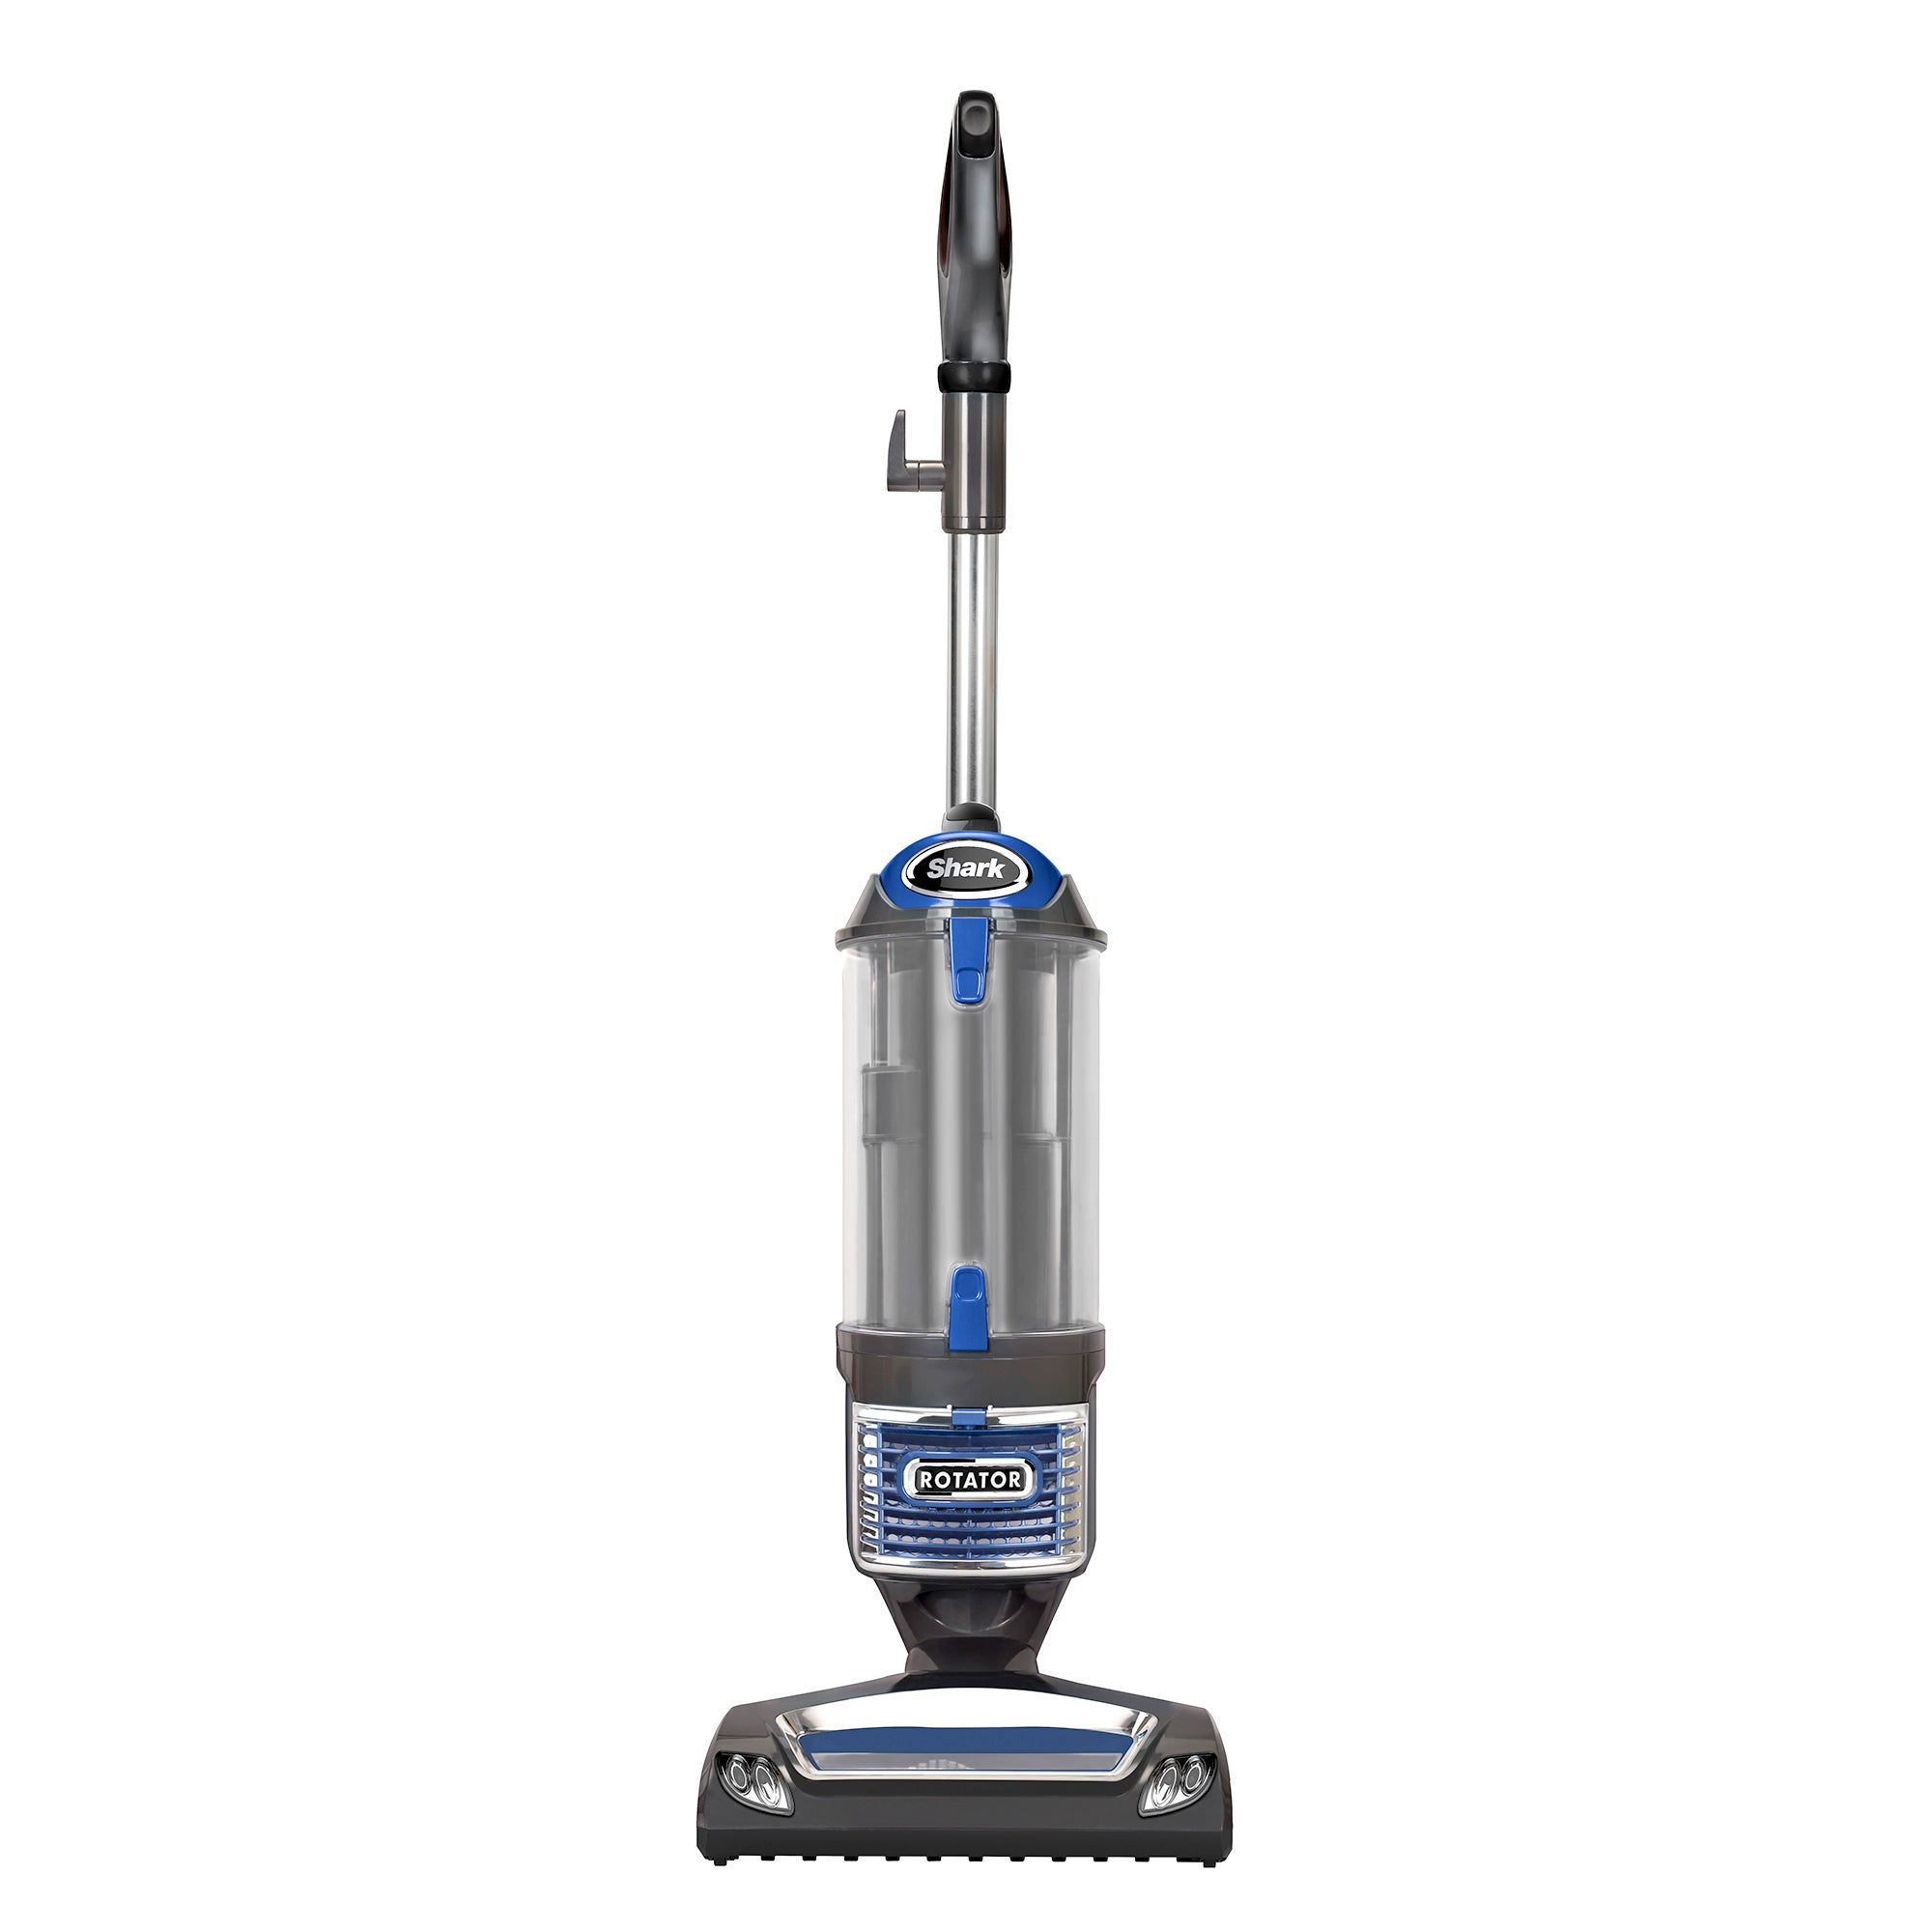 Shark NV500 Rotator Lift Away Professional 3-in-1 Vacuum